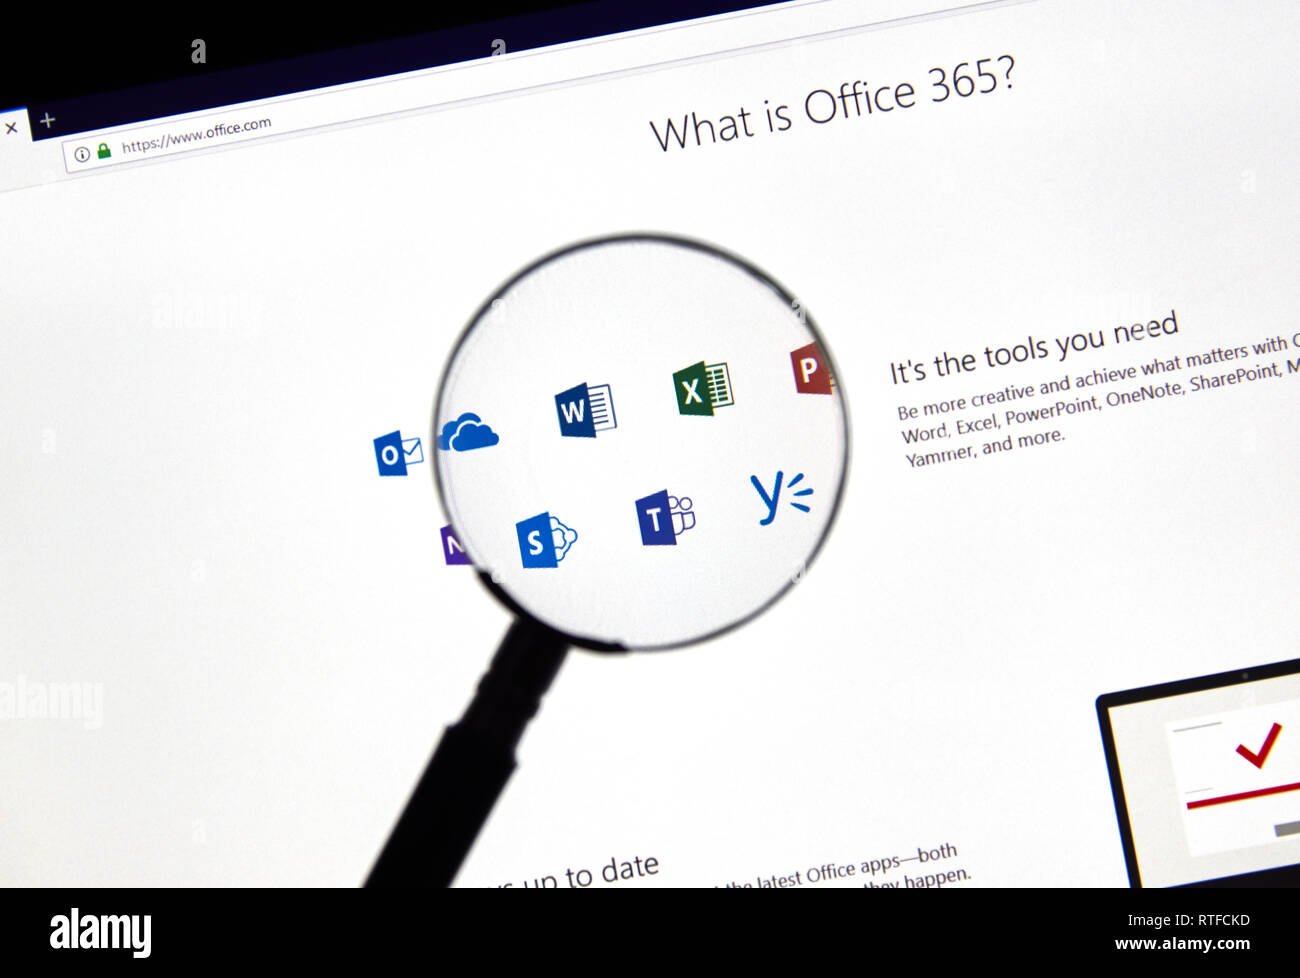 MONTREAL, CANADA - FEBRUARY 28, 2019: MIcrosoft Office 365 icons on